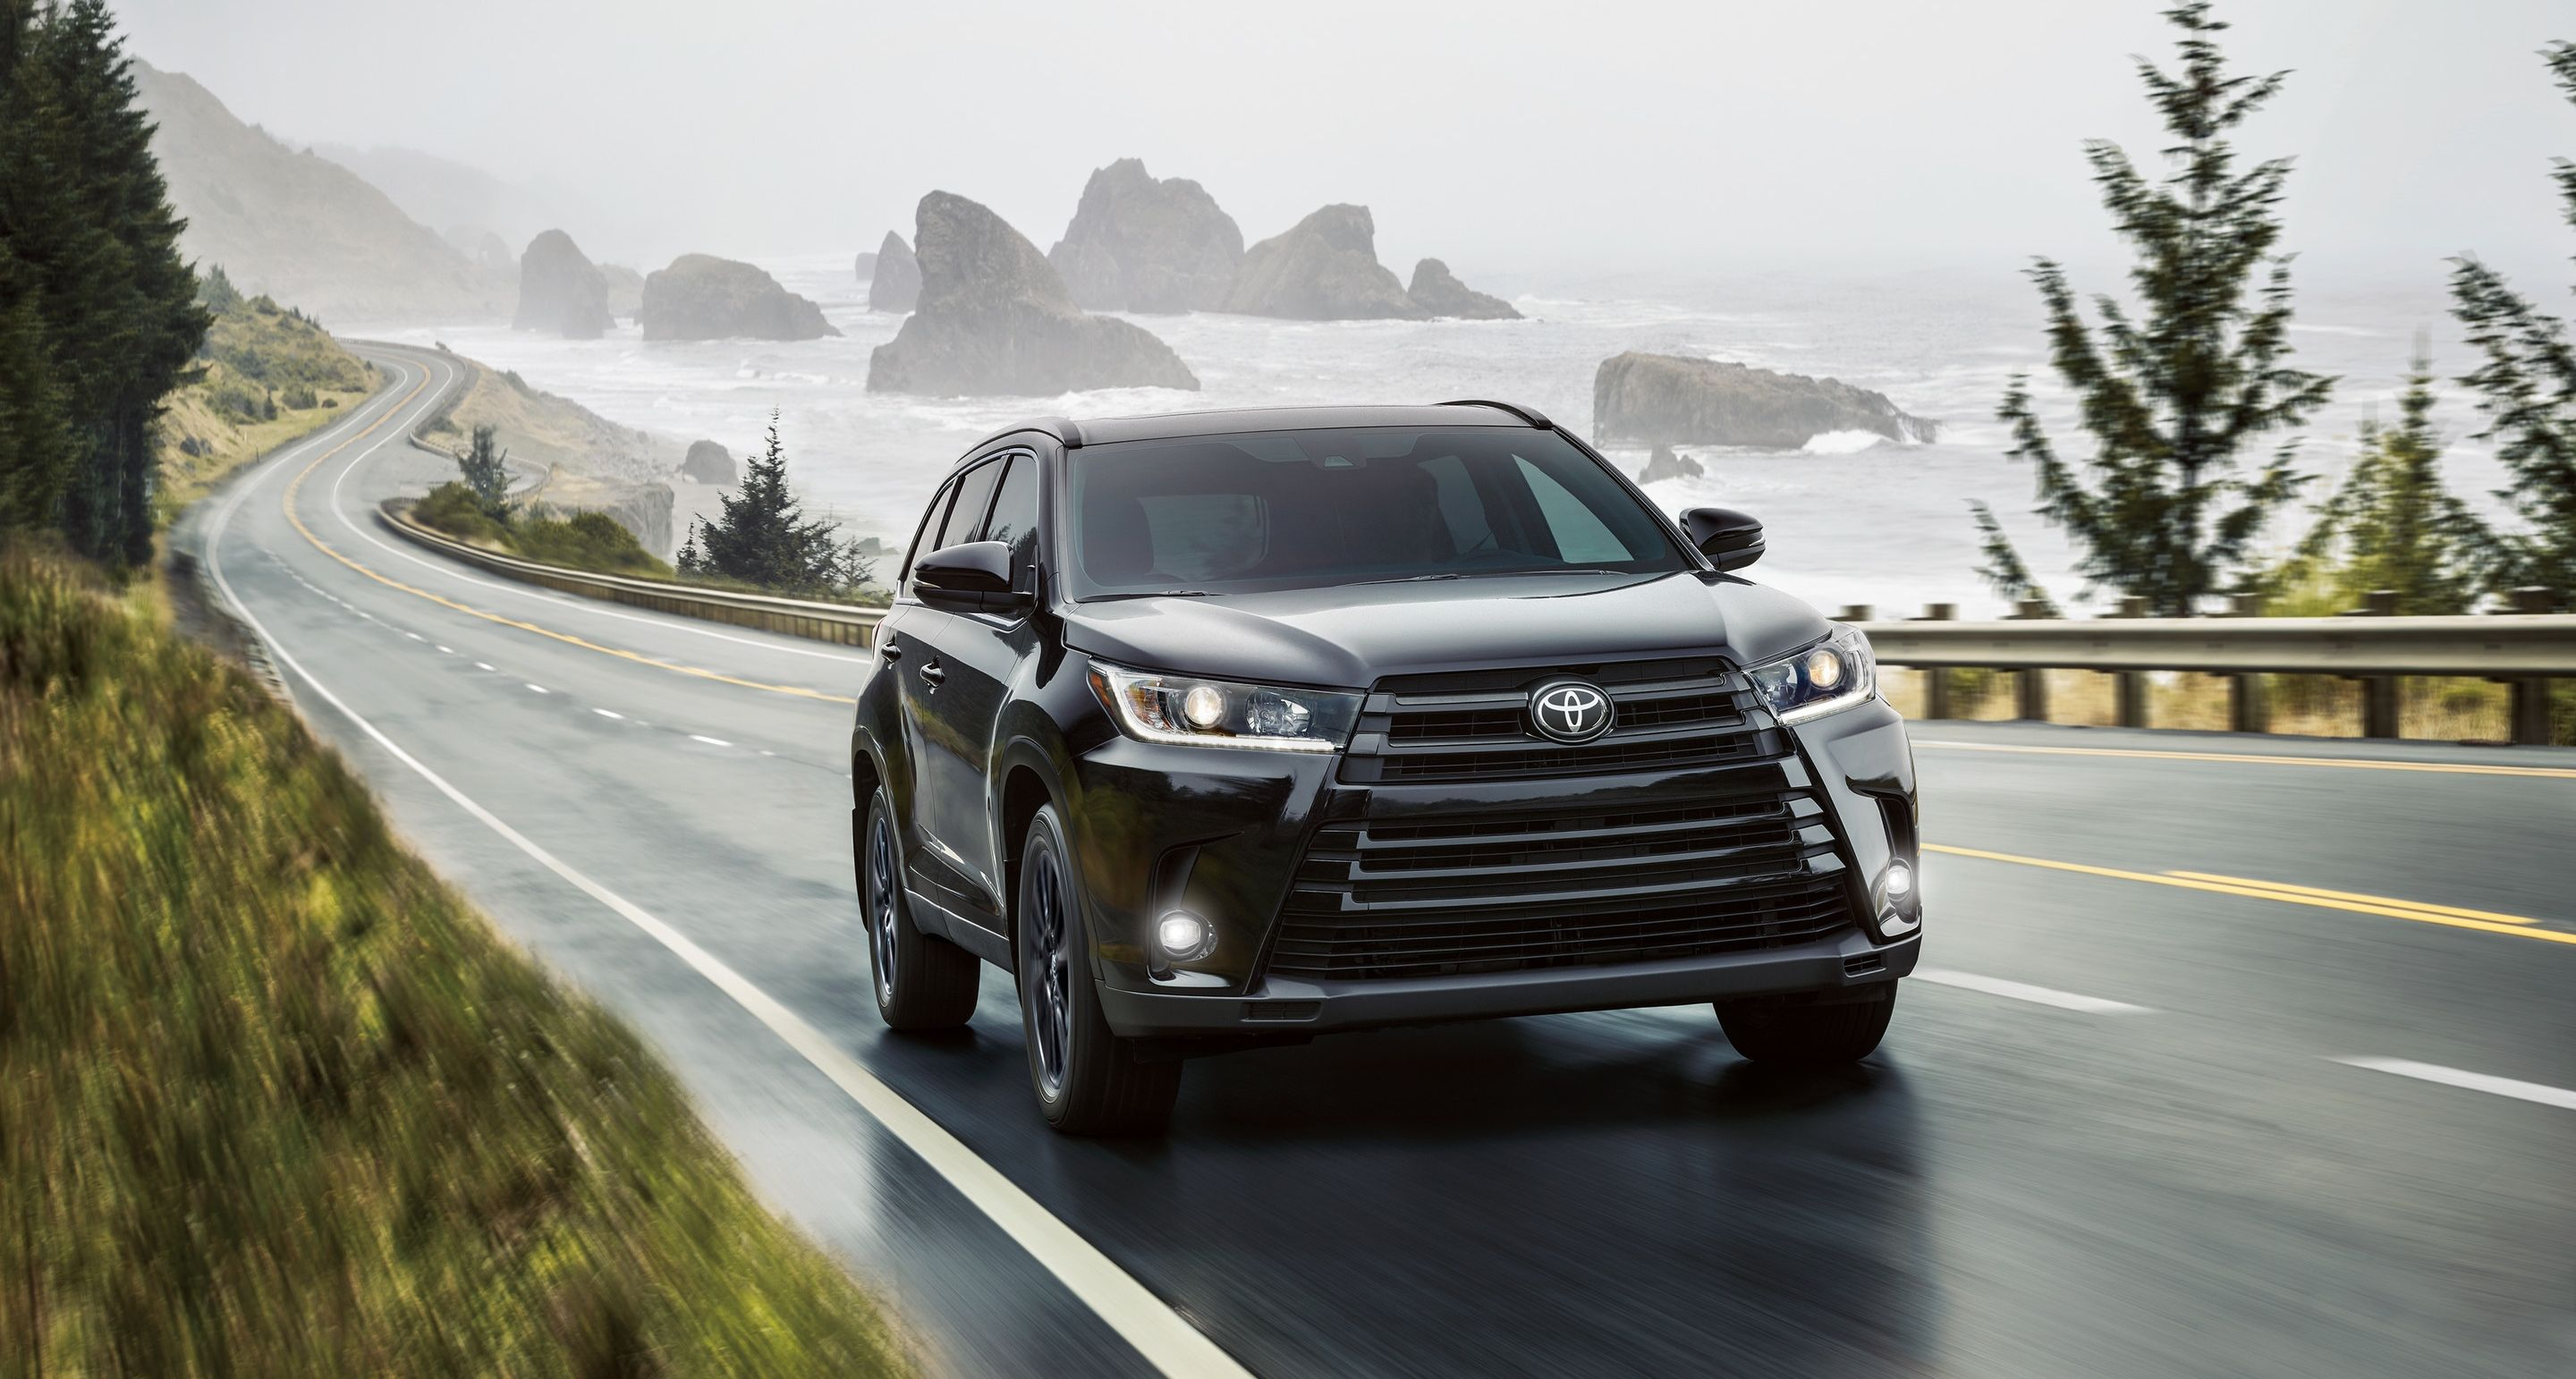 2019 Toyota Highlander for Sale near Waukee, IA